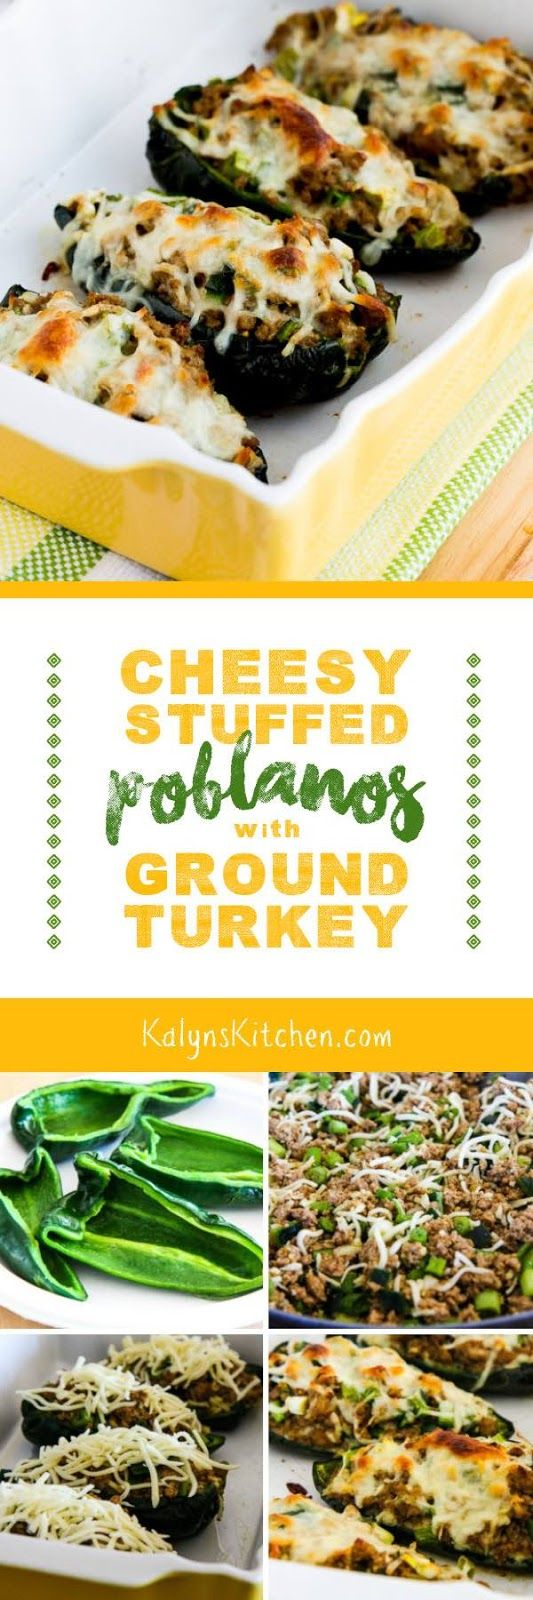 I love the spicy ground turkey filling in these Cheesy Stuffed Poblanos with Ground Turkey, and this tasty recipe is low-carb, gluten-free, and South Beach Diet friendly! [found on KalynsKitchen.com]